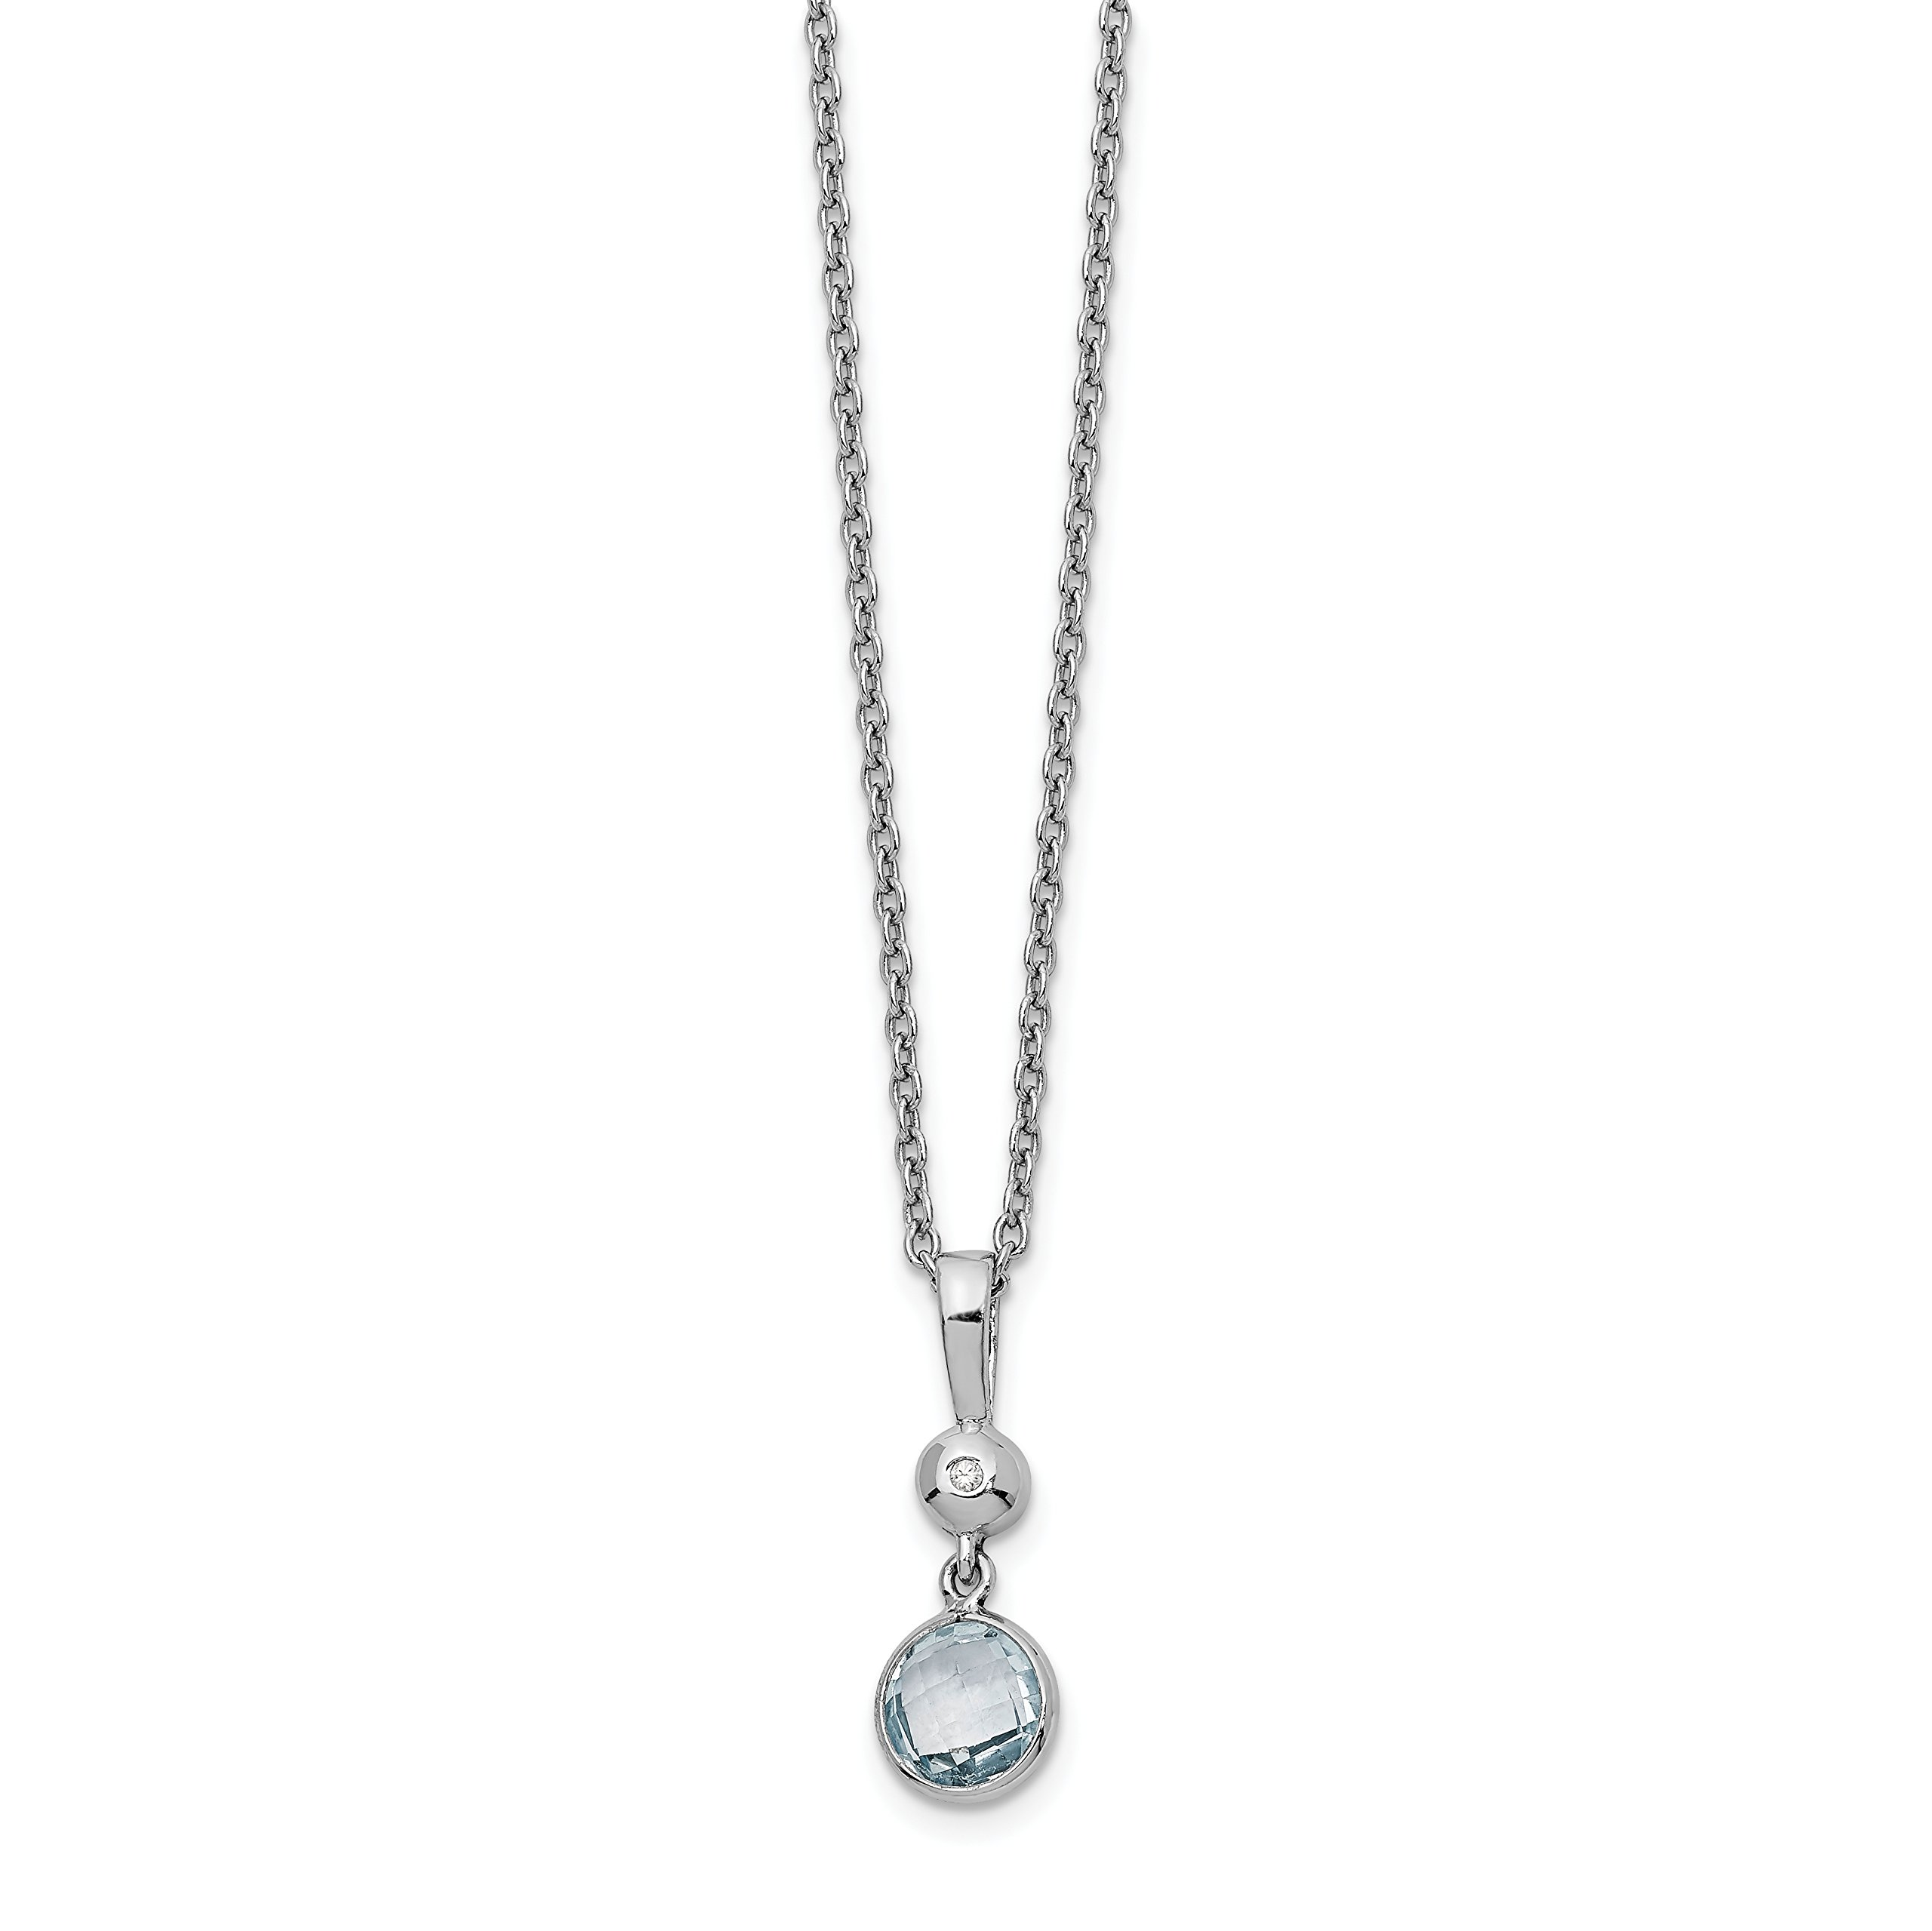 ICE CARATS 925 Sterling Silver Blue Topaz Diamond Chain Necklace Gemstone Fine Jewelry Gift Set For Women Heart